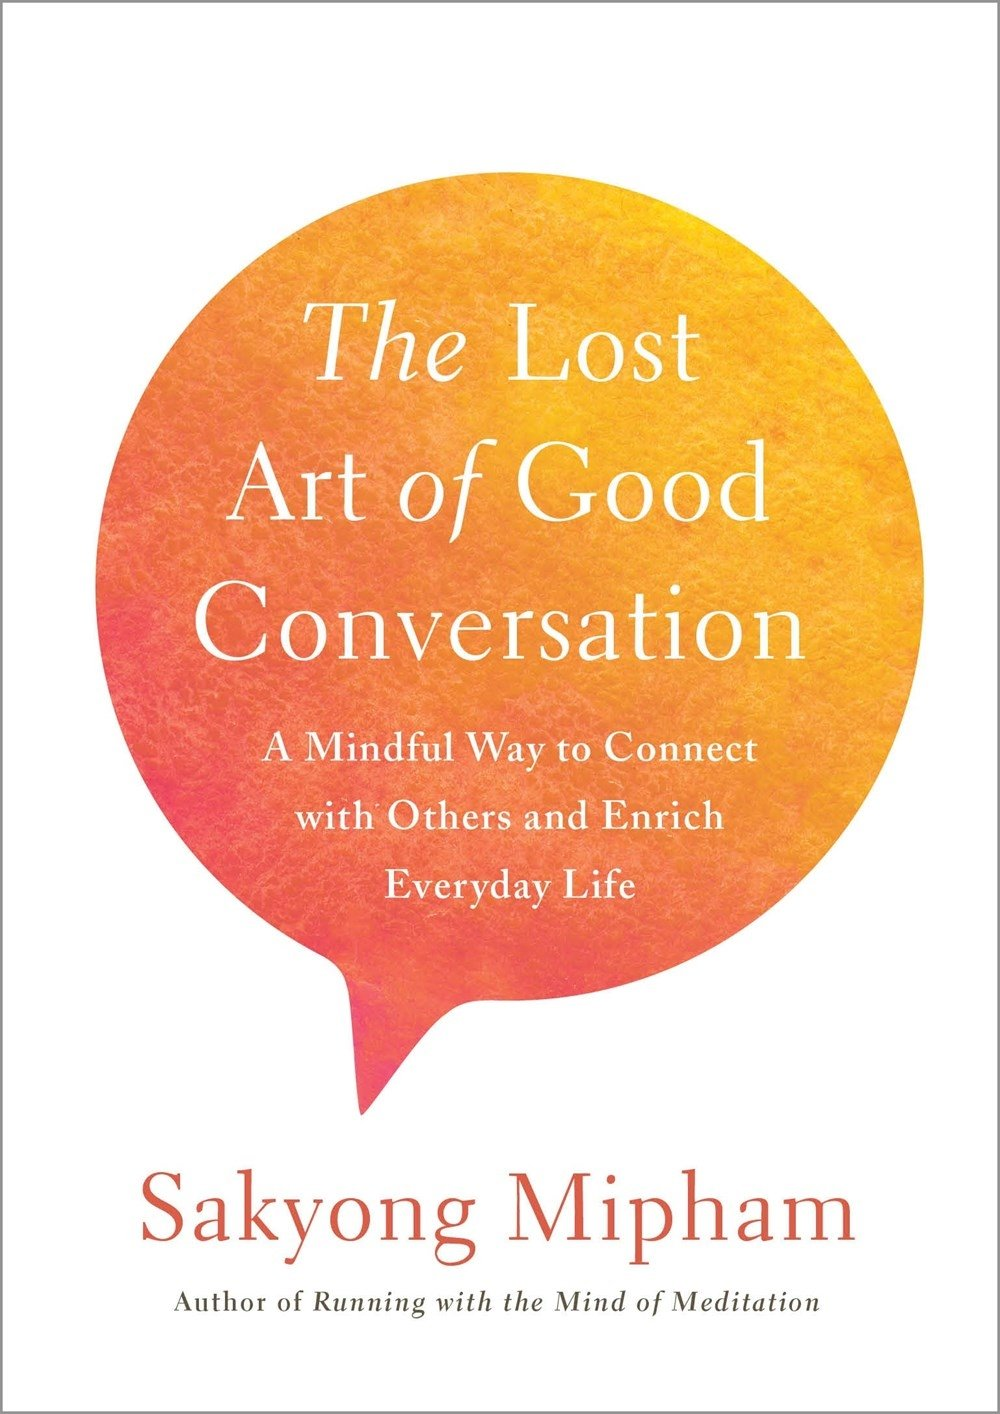 The Lost Art of Good Conversation: A Mindful Way to Connect with Others and Enrich Everyday Life by Sakyong Mipham